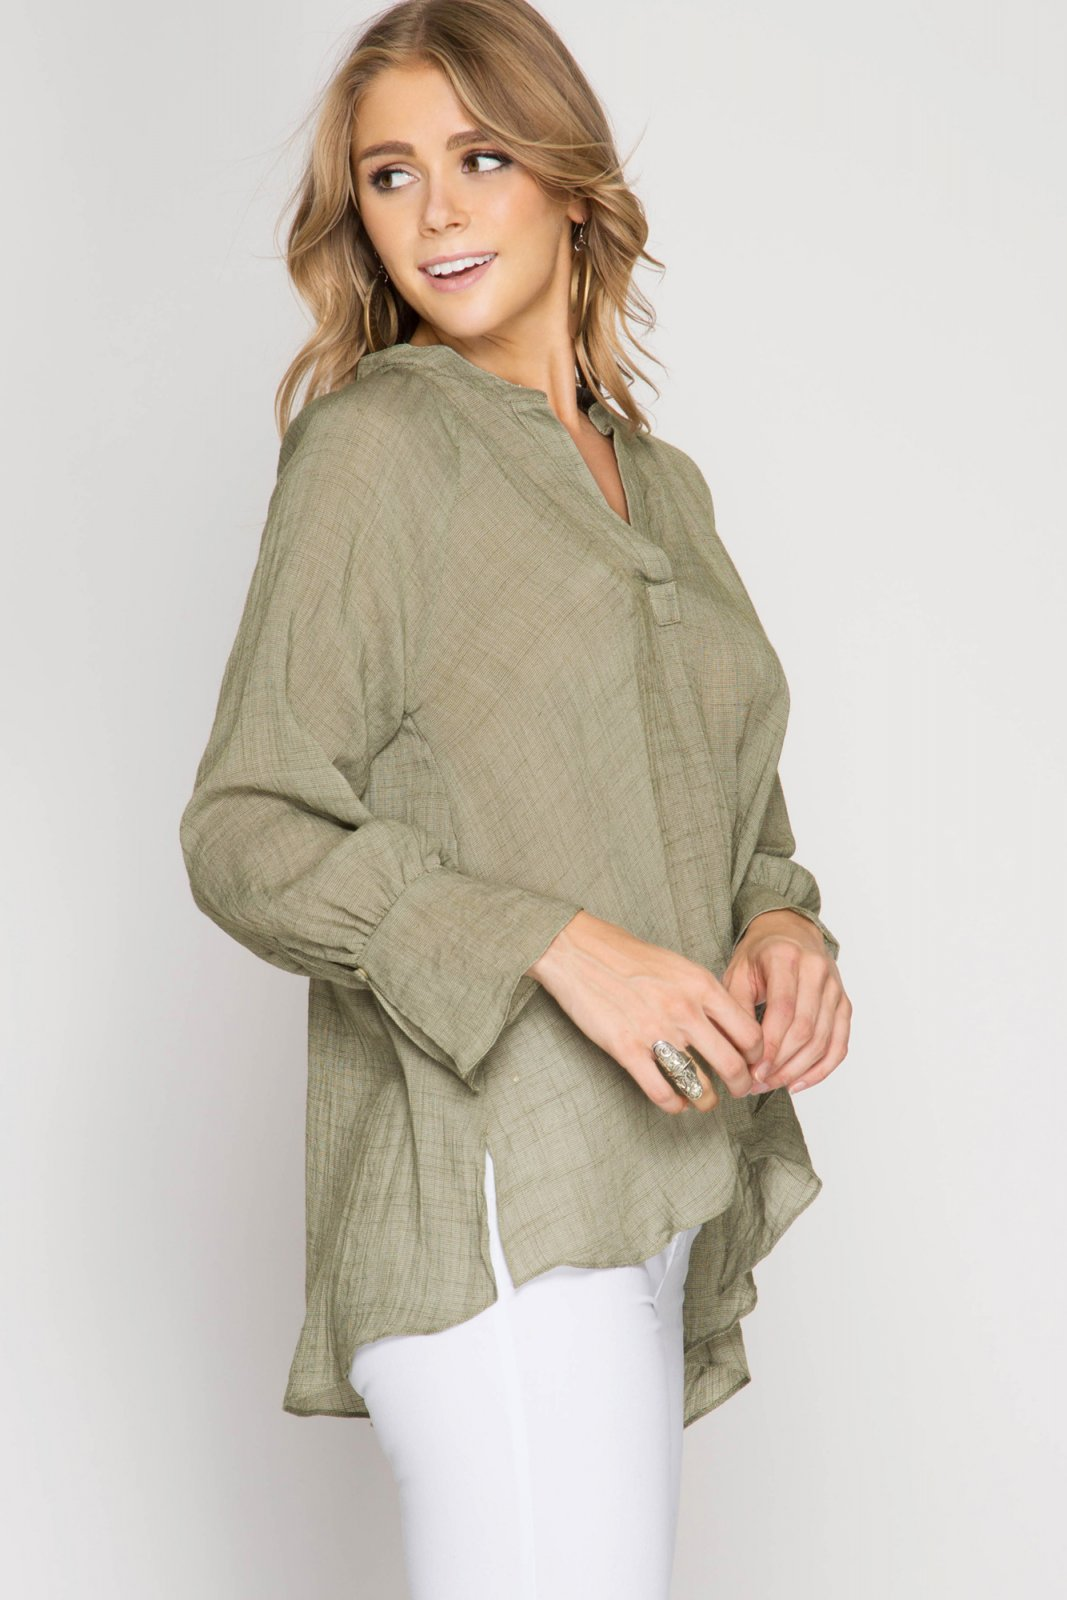 BLOUSE Long Sleeve Top -  OLIVE